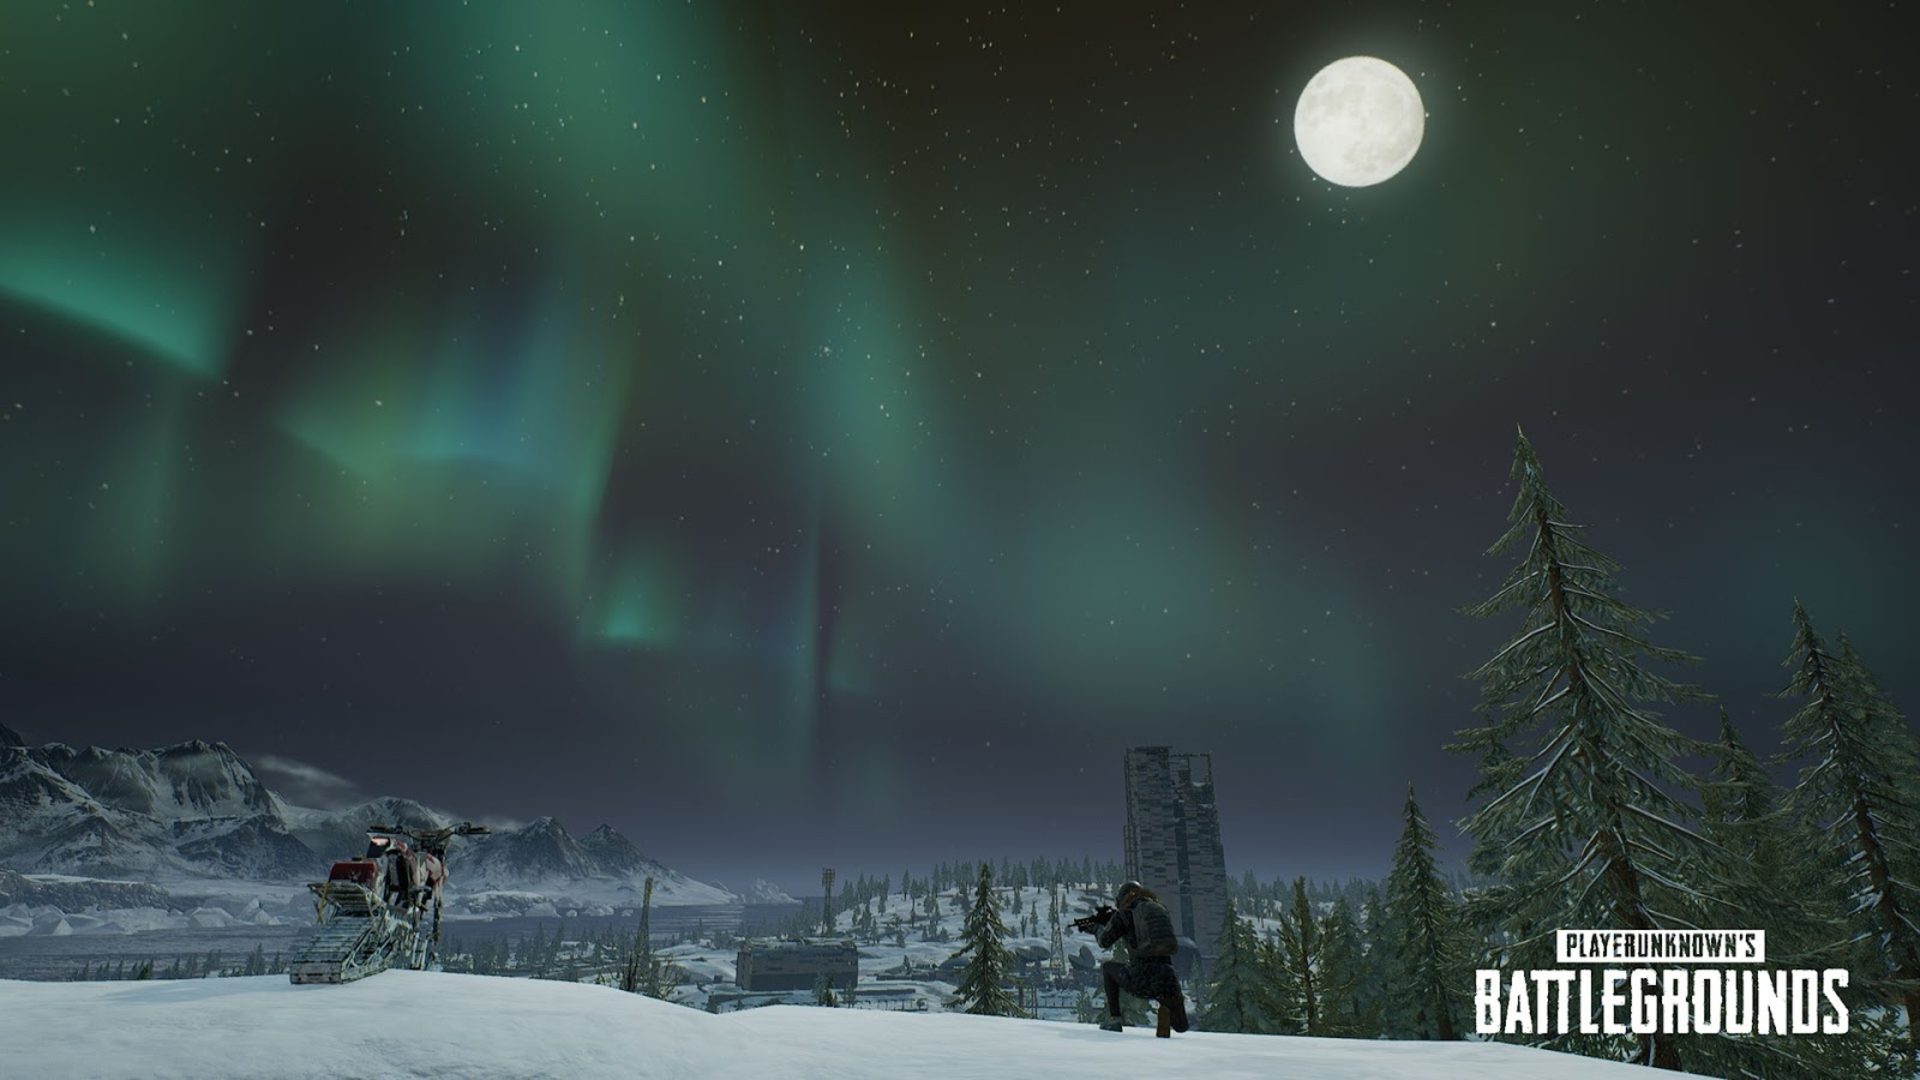 Pubg Wallpaper Anime Hd: PUBG Adds Snowbikes, Canted Sights And Northern Lights On